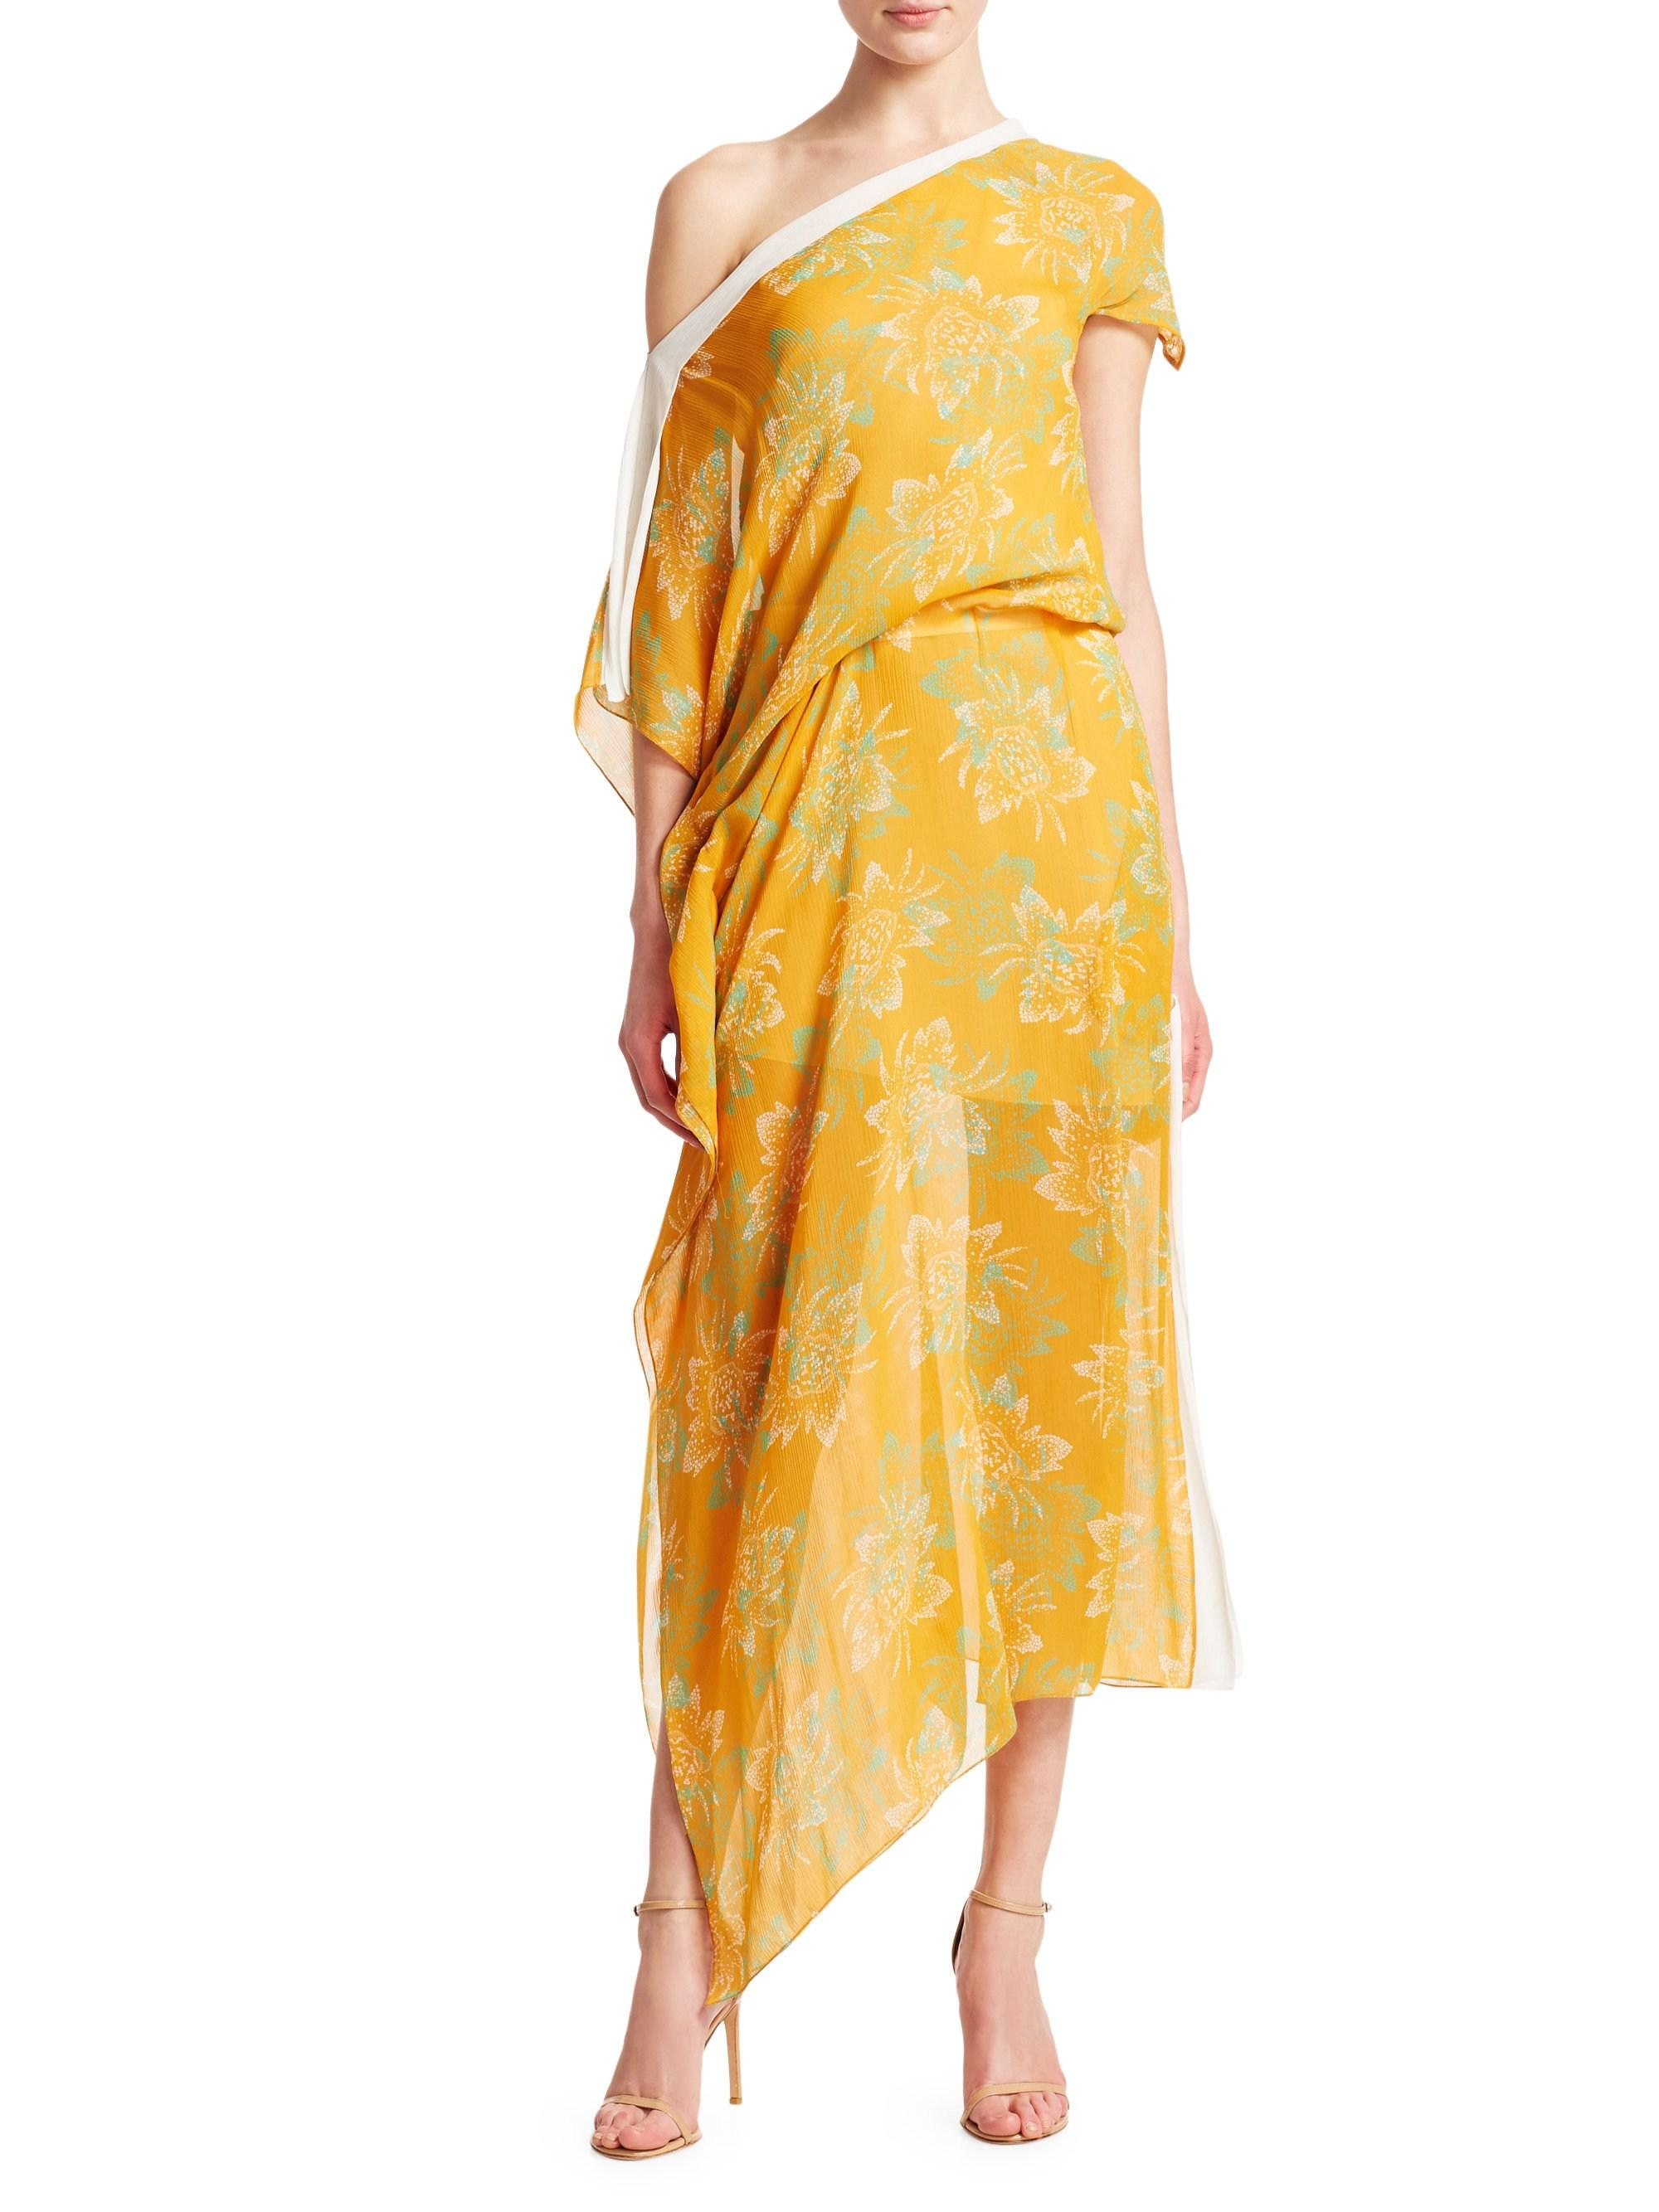 9057e0ca7e Roland Mouret Arklow Floral One-shoulder Dress in Yellow - Lyst